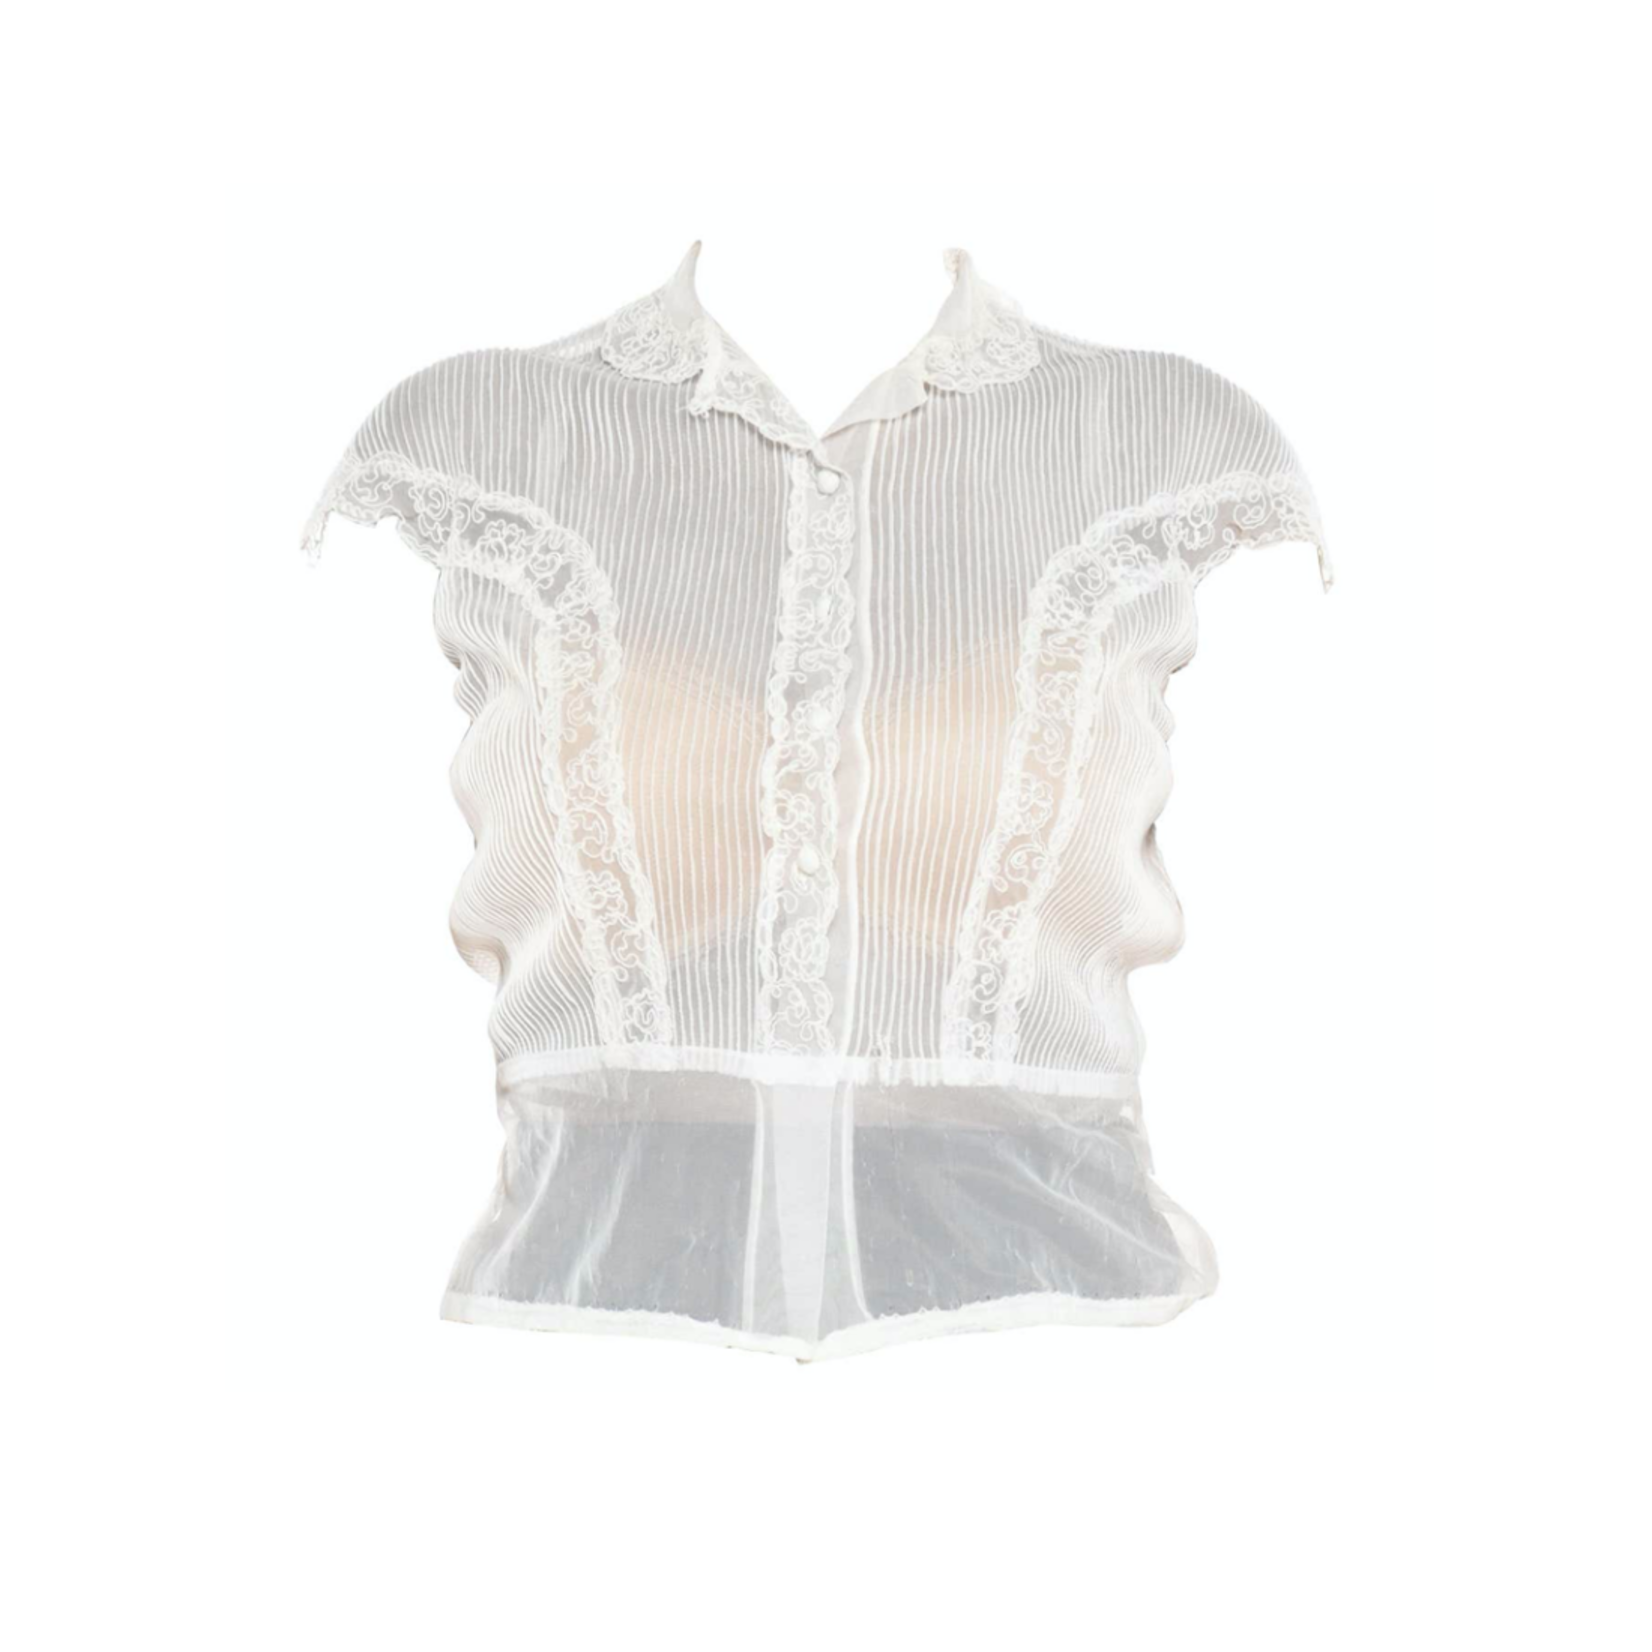 Wyld Blue Vintage 1950s Off White Sheer Nylon Pintucked with Lace Trim Blouse with Lace Trim Cap Sleeves